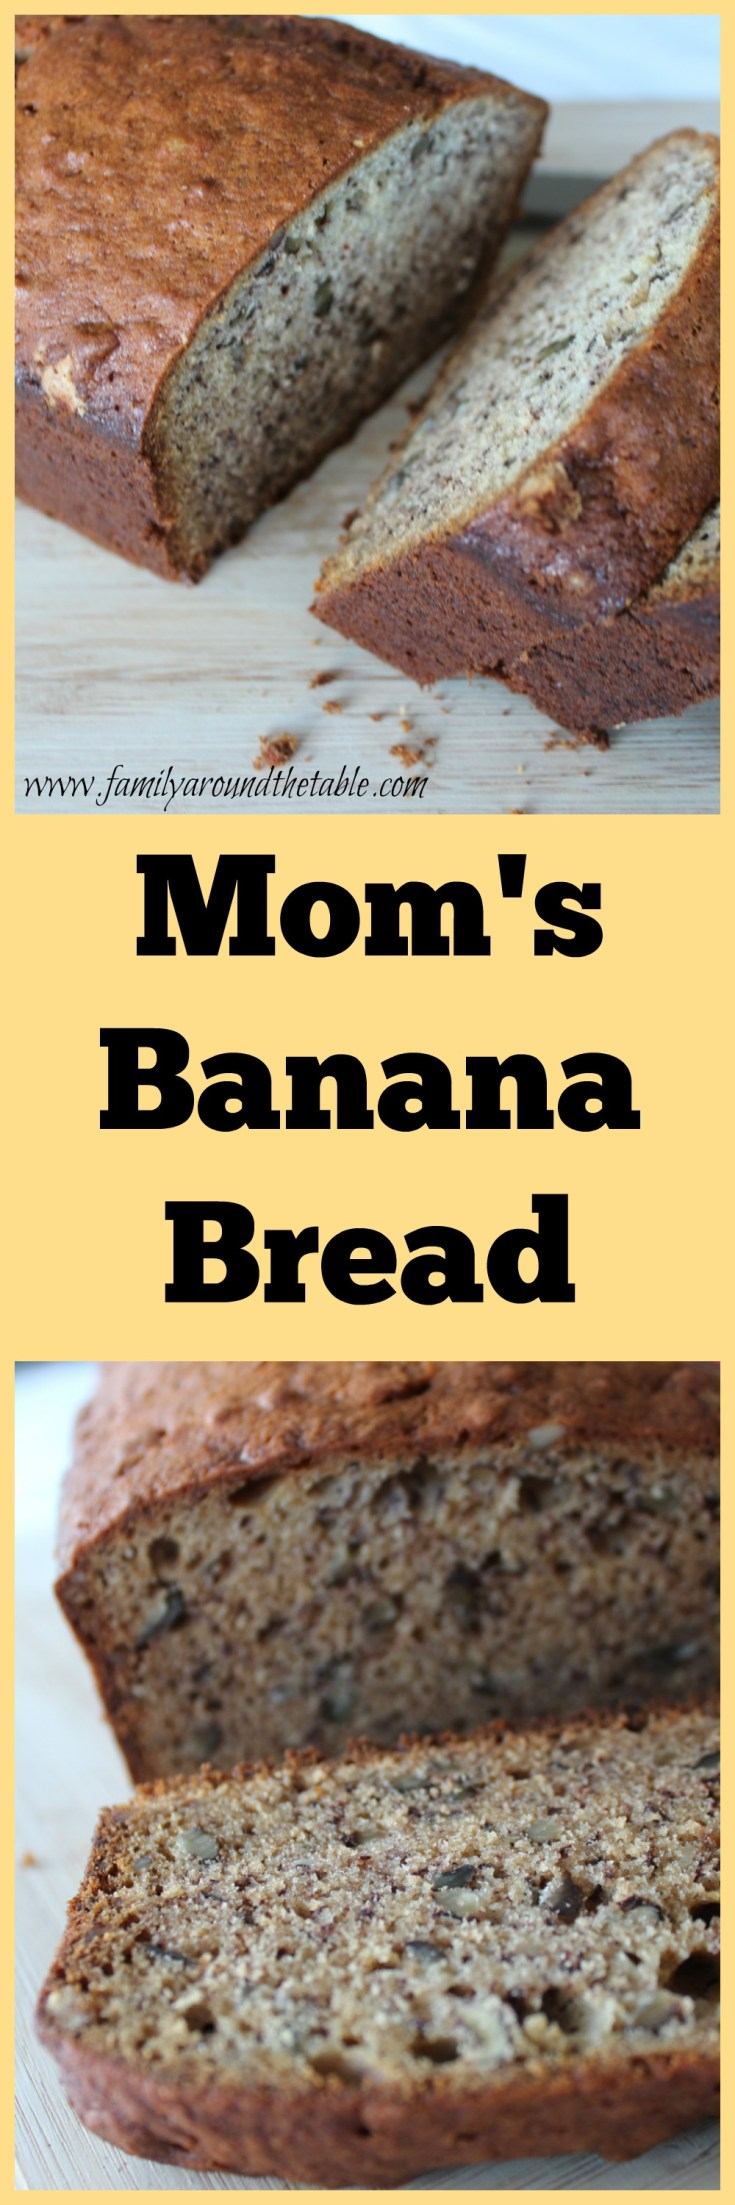 Mom's banana bread recipe has been in the family for more than 40 years. It's become a family favorite with my kids too.